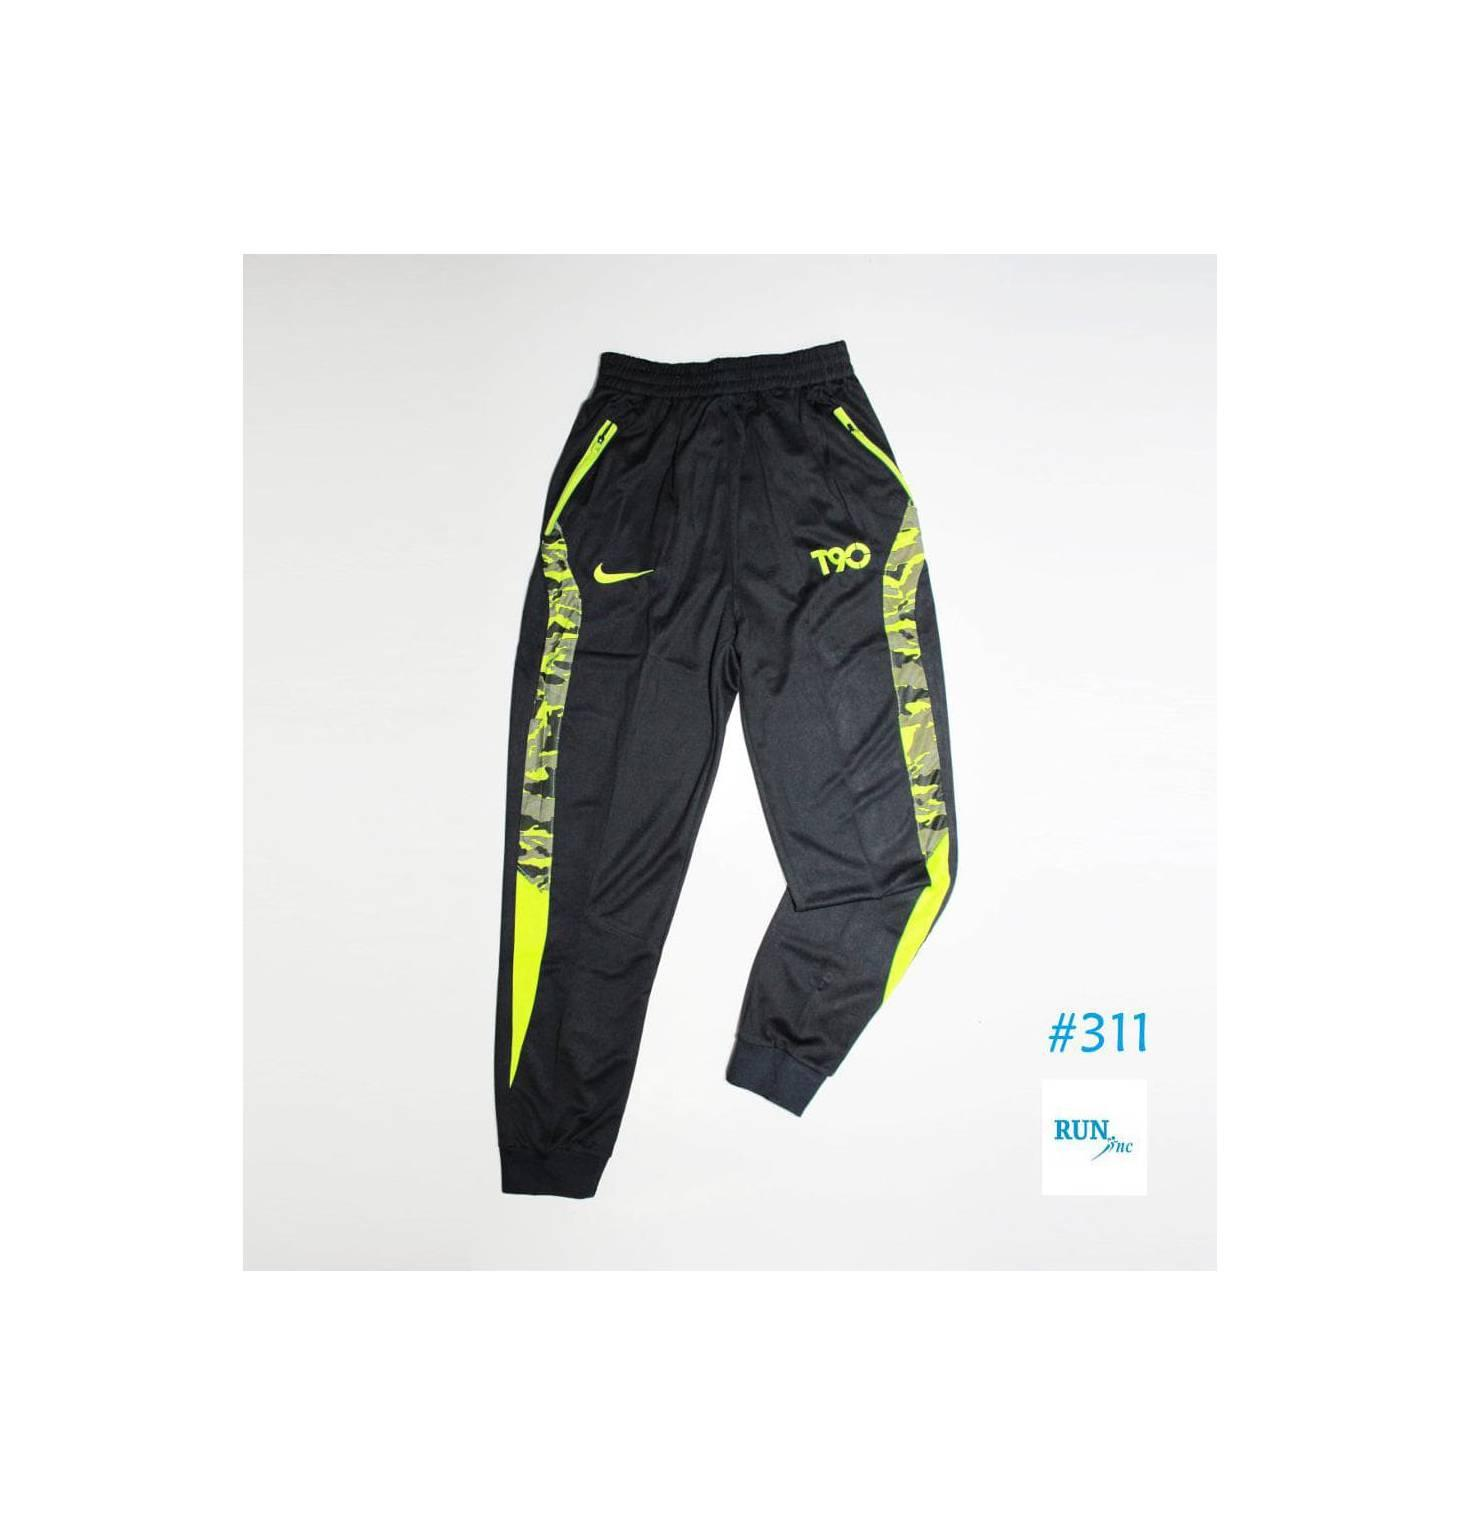 READY Celana Training Running GYM Jogger Nike Panjang #311